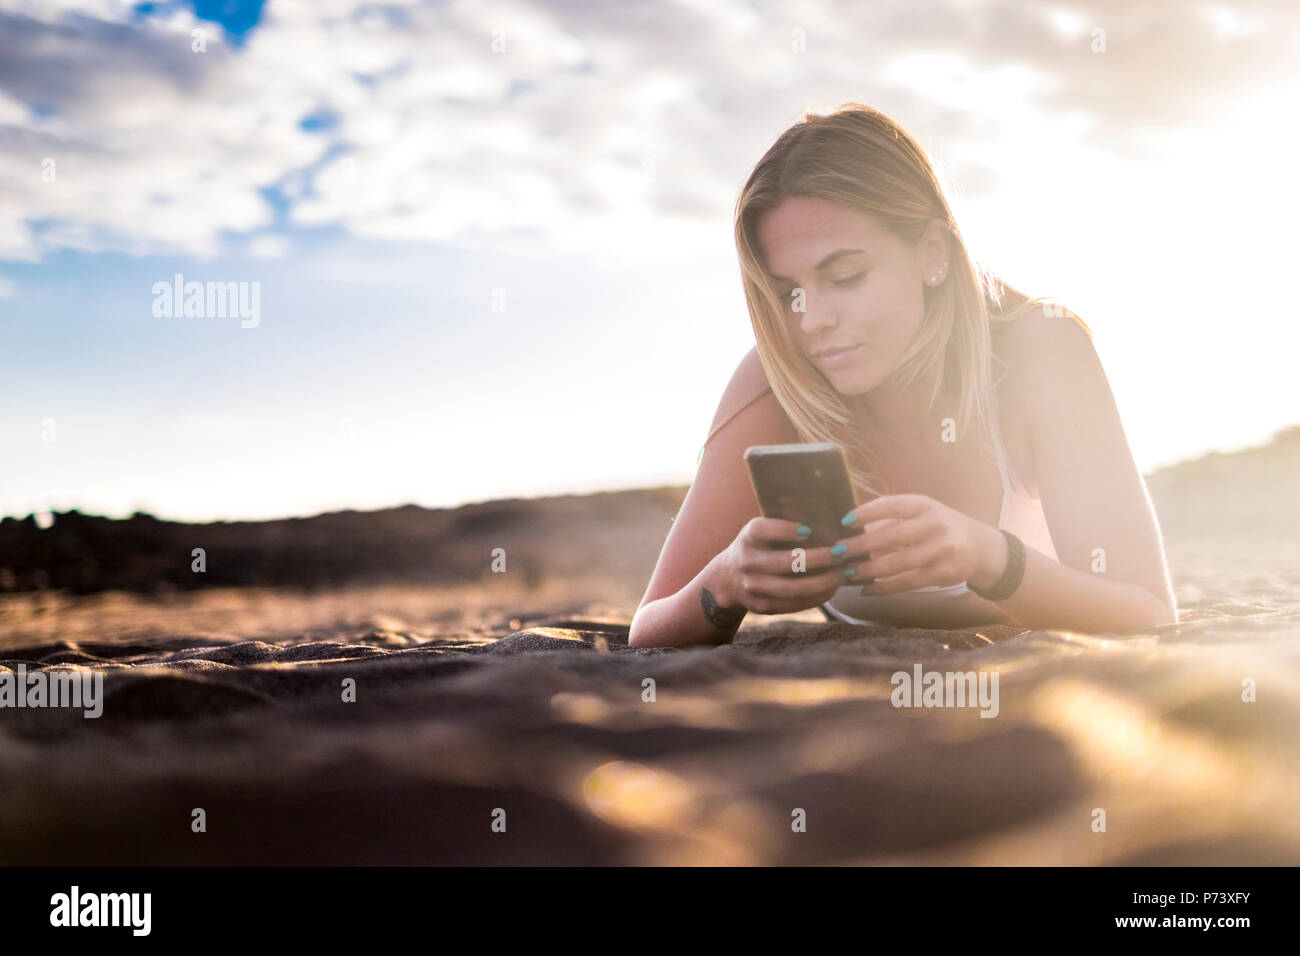 young beautiful blonde woman lay down at the beach in vacation and lifestyle leisure activity using a smartphone to check social media and use interne - Stock Image